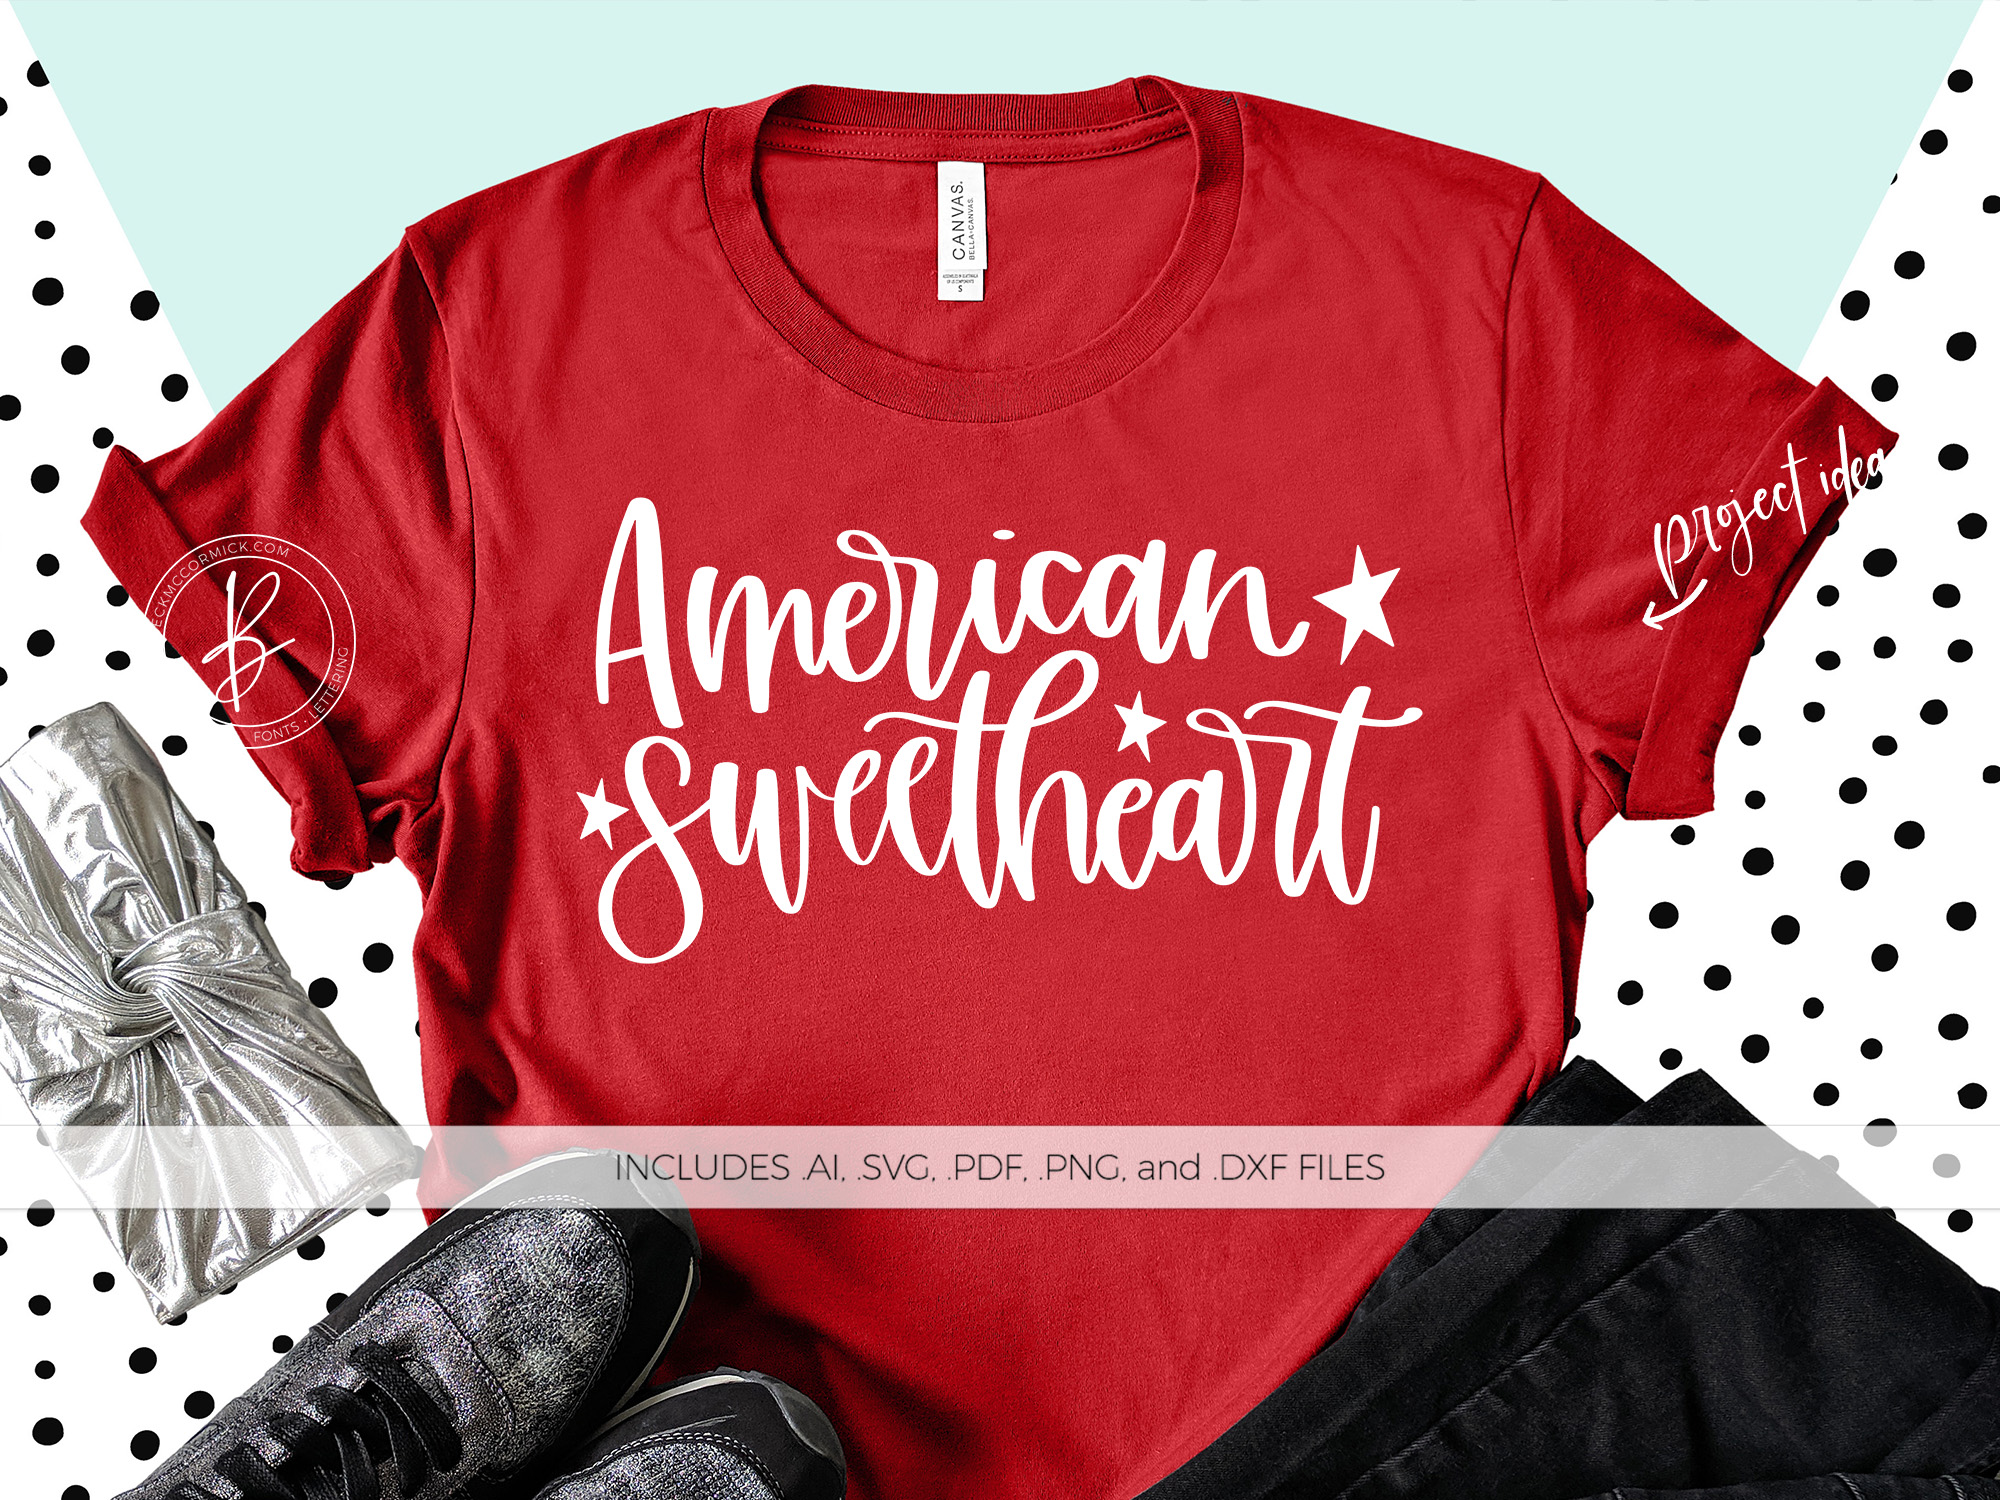 Download Free American Sweetheart Graphic By Beckmccormick Creative Fabrica for Cricut Explore, Silhouette and other cutting machines.